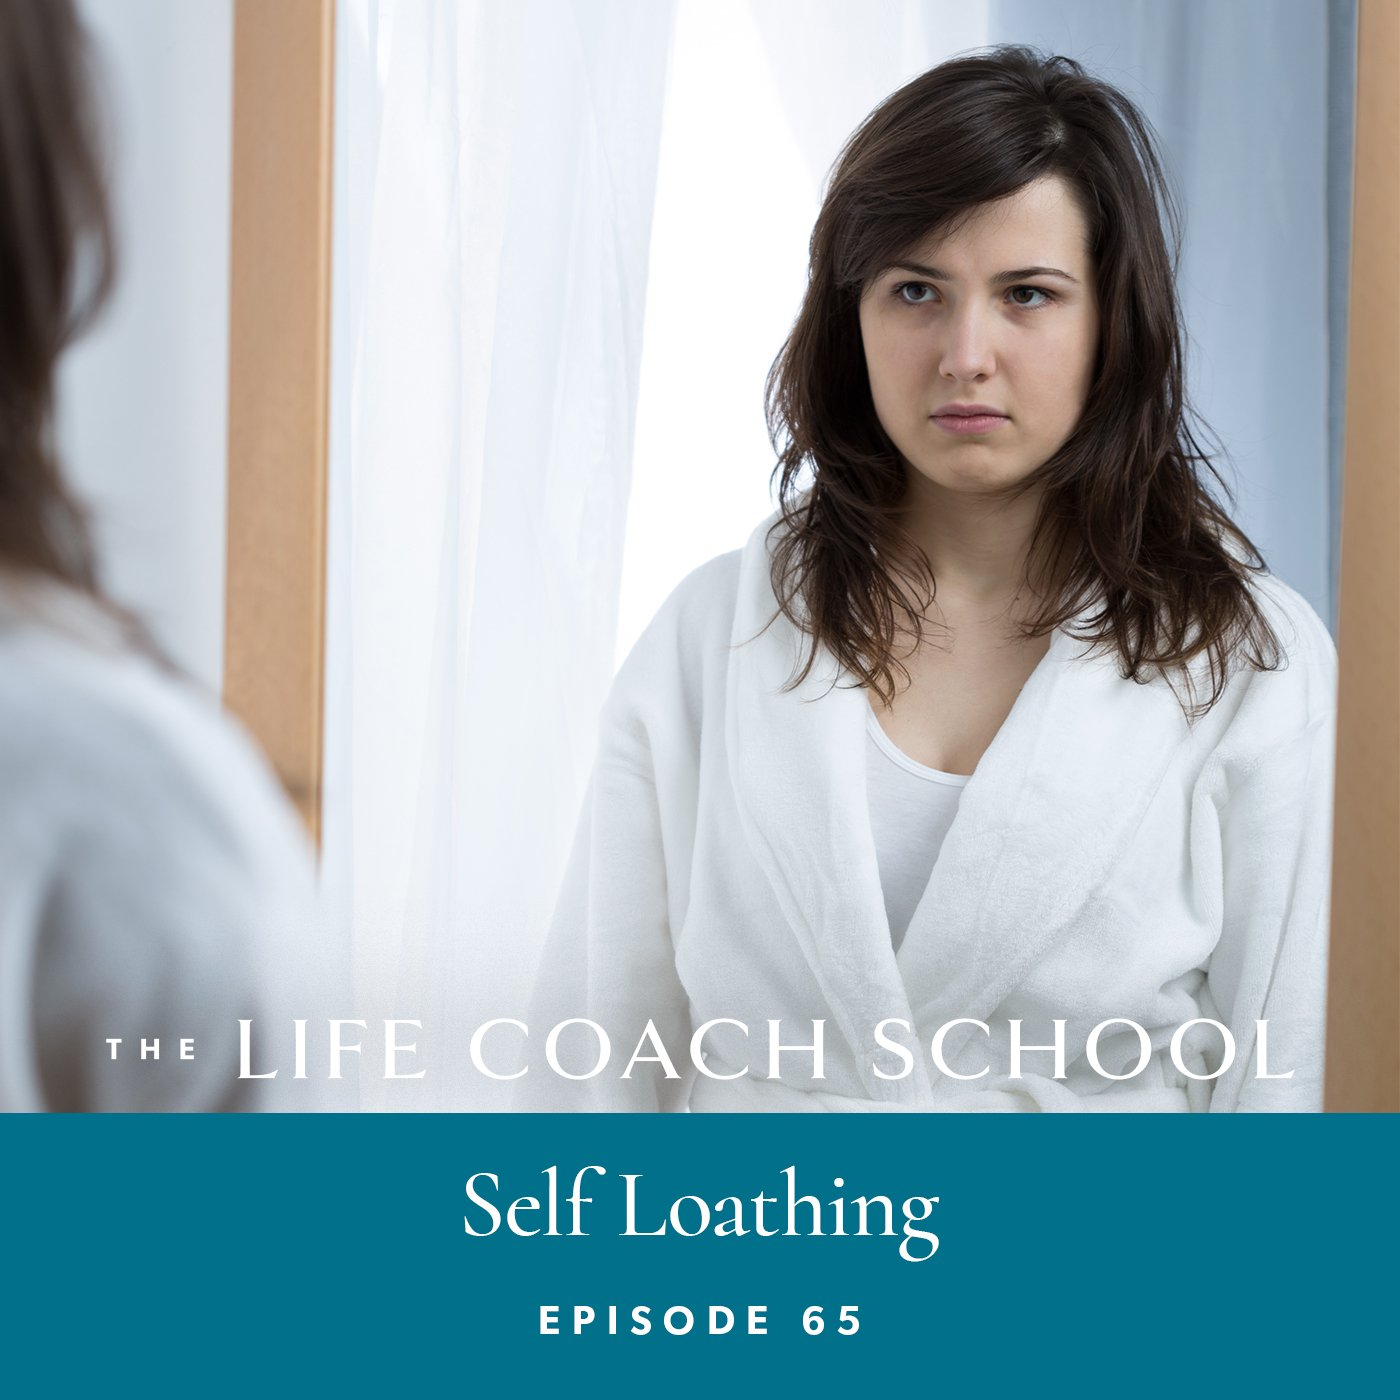 The Life Coach School Podcast with Brooke Castillo | Episode 65 | Self Loathing